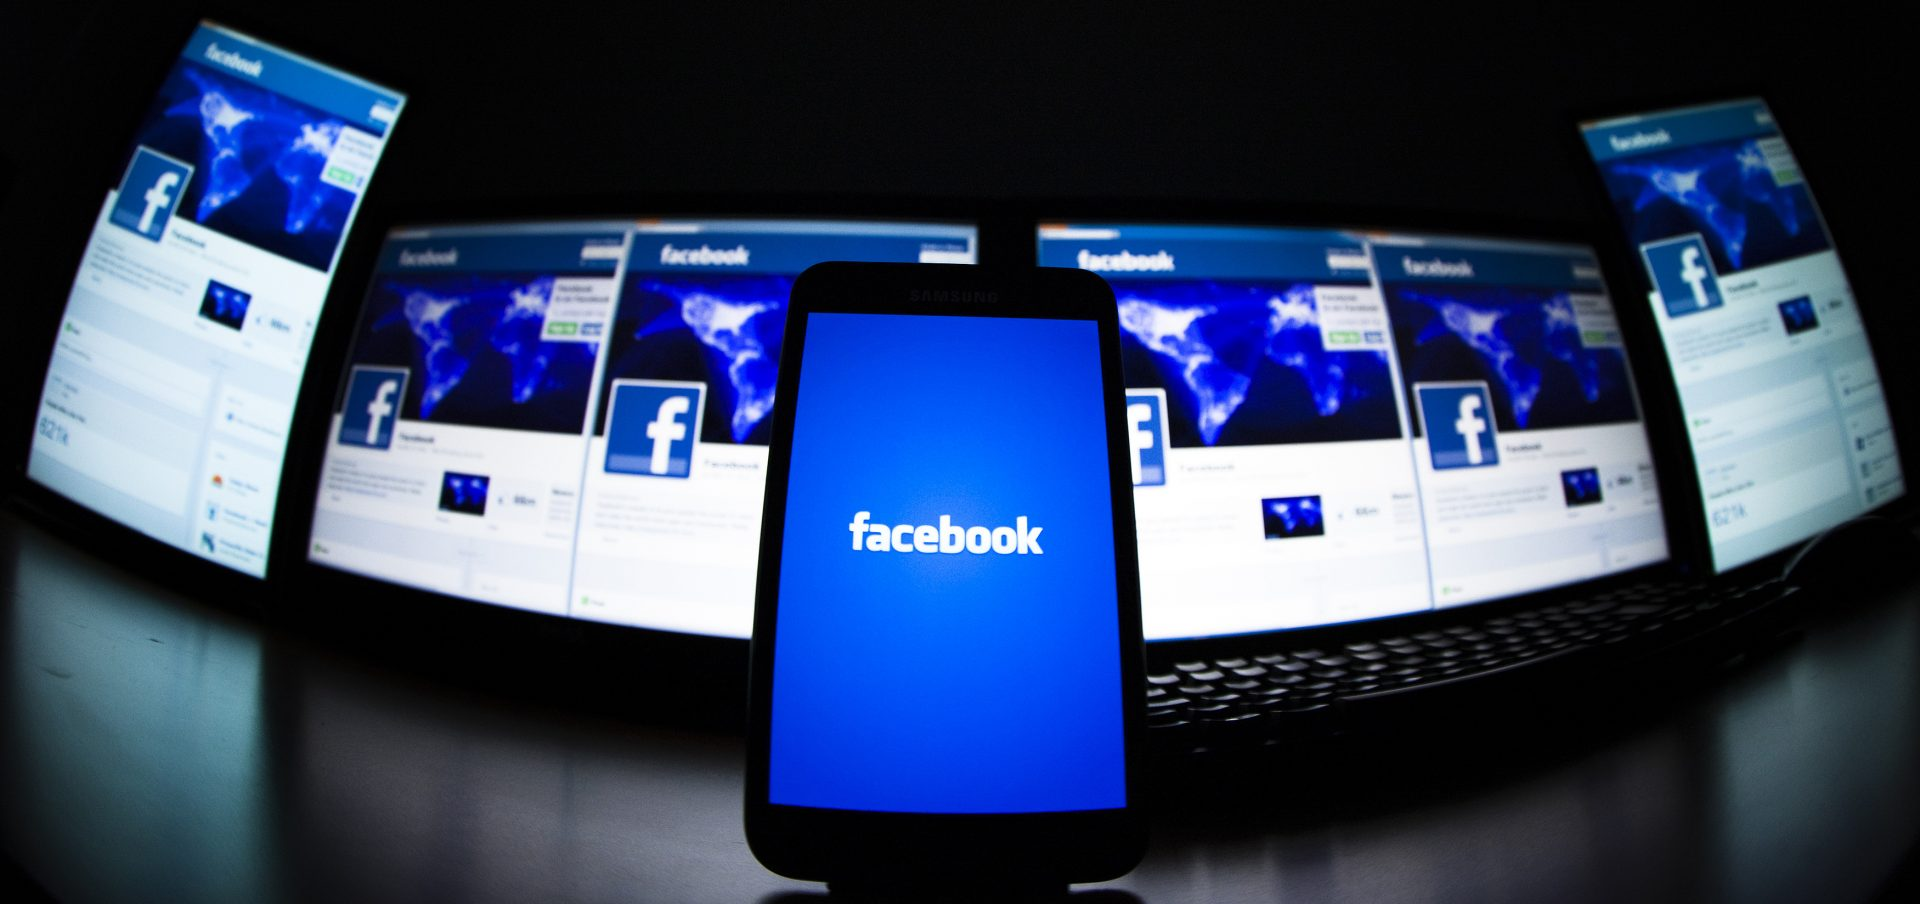 Facebook è un canale di marketing valido per l'agenzia immobiliare?